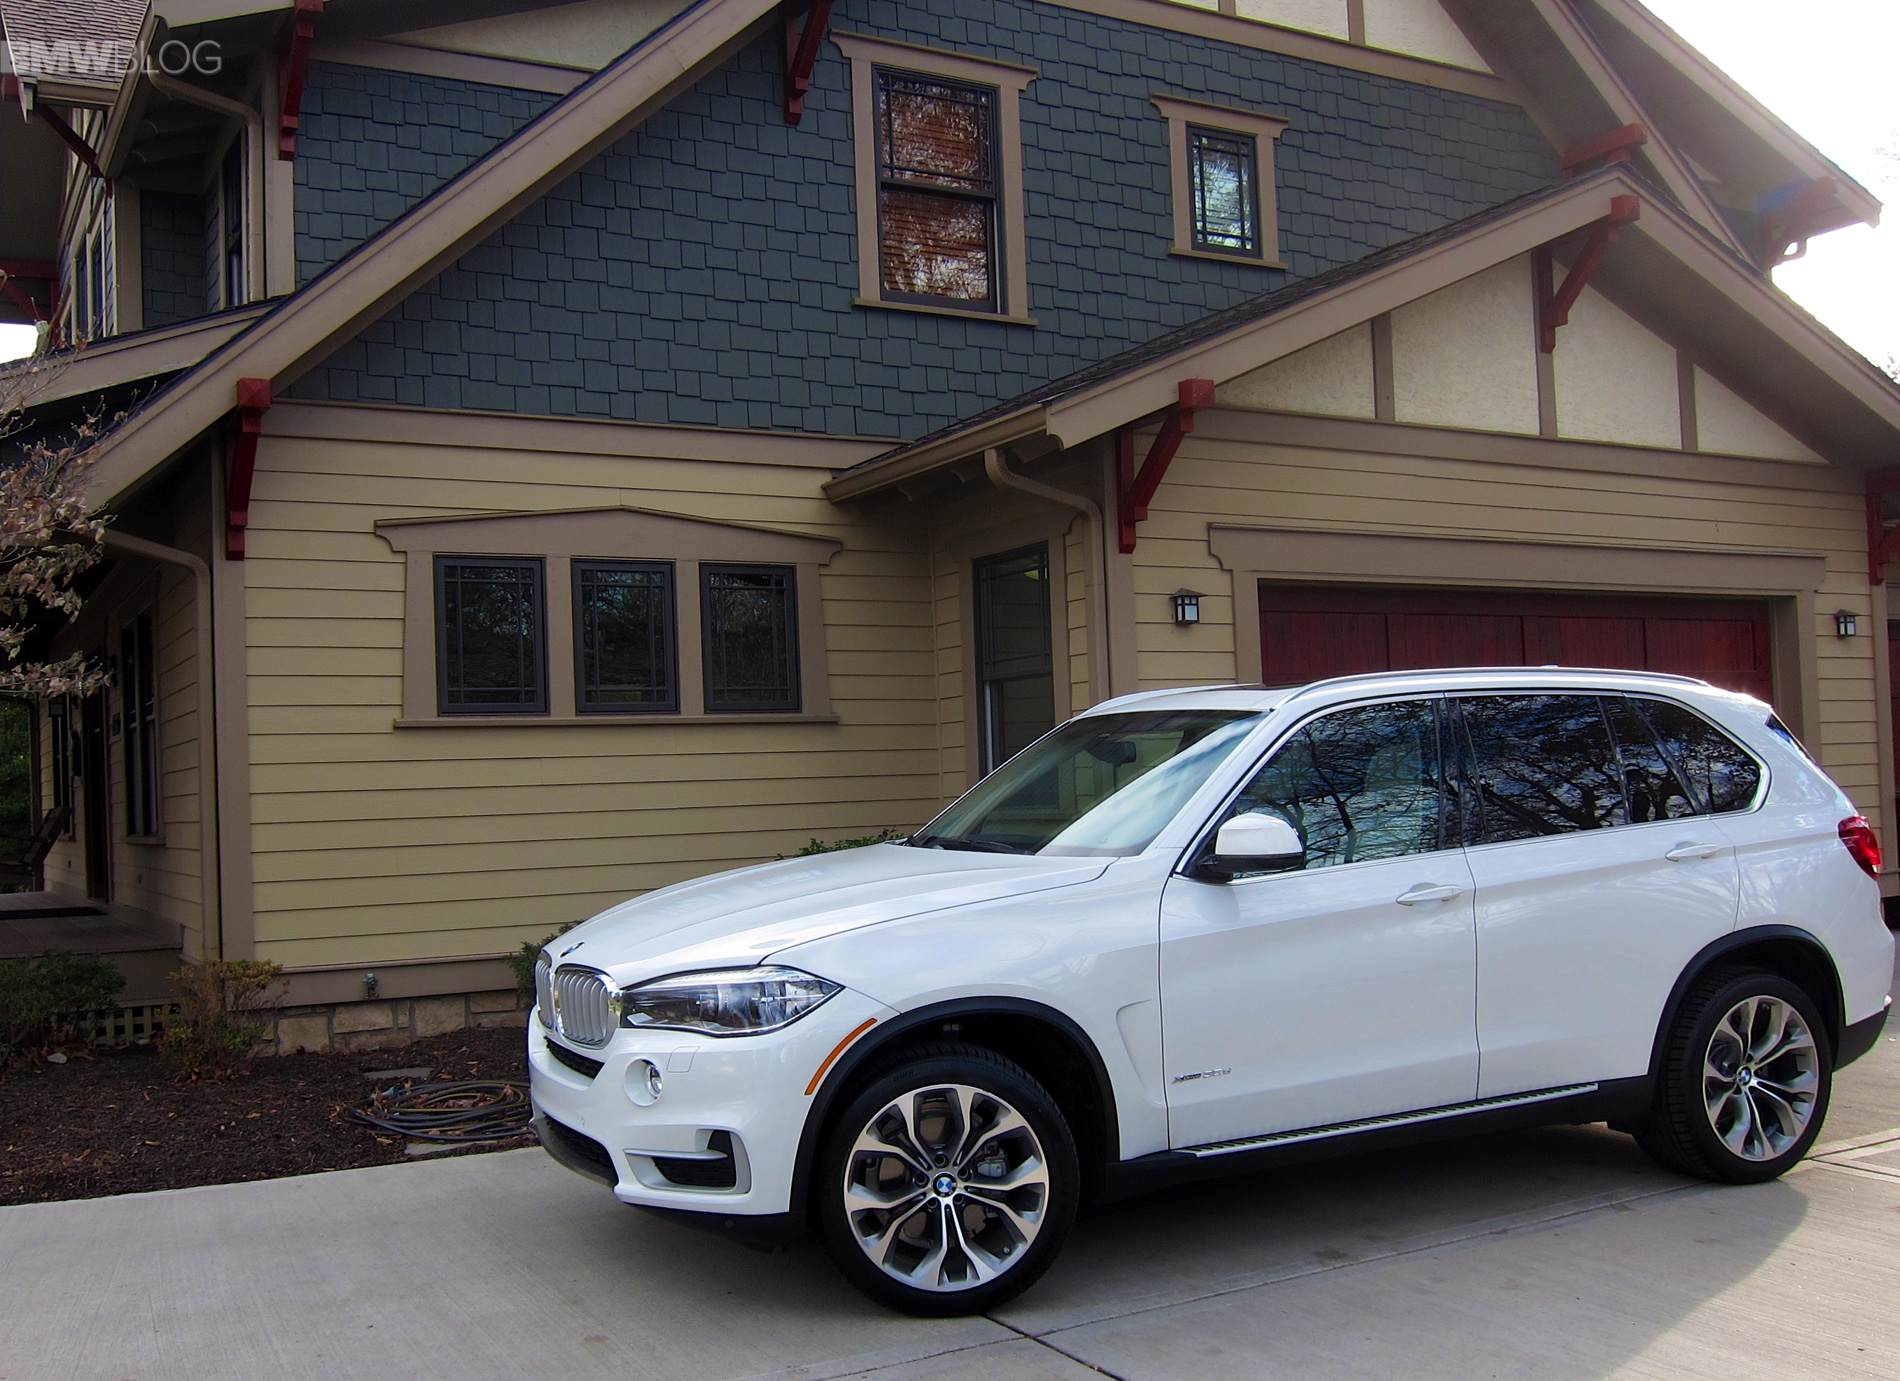 2015 bmw x5 xdrive35d images 1900x1200 06